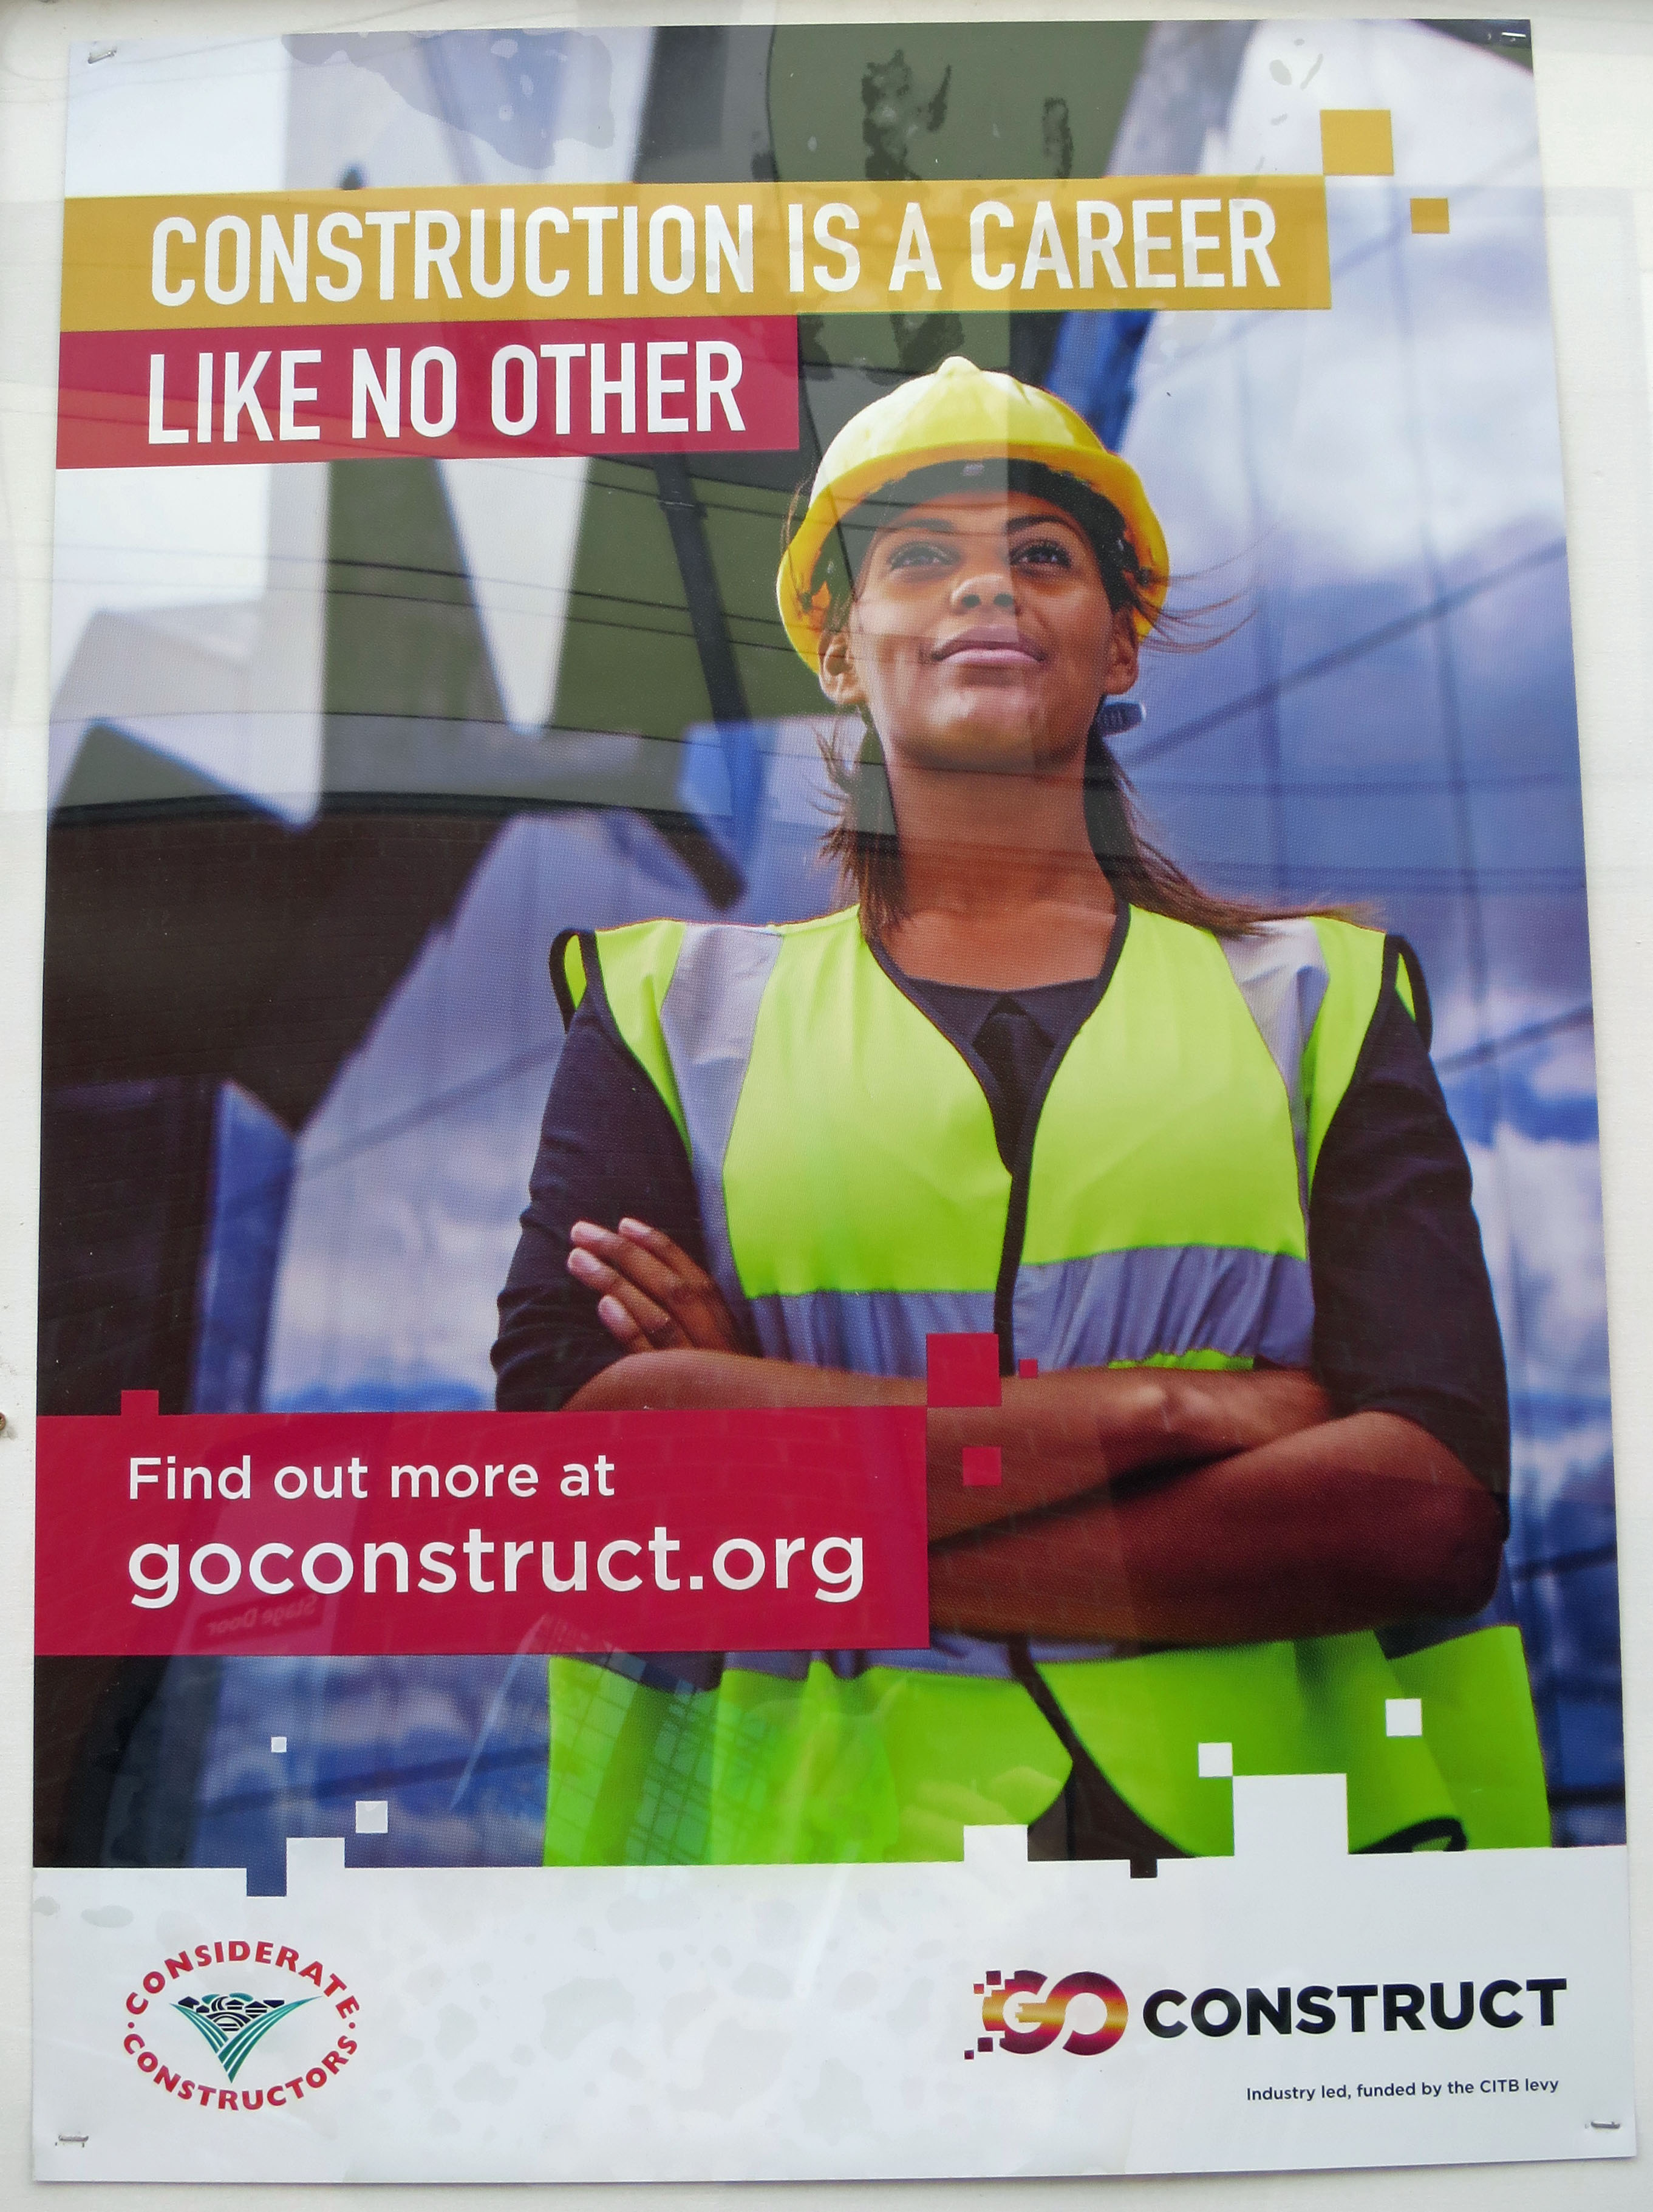 lgodbout_construction a career like no other